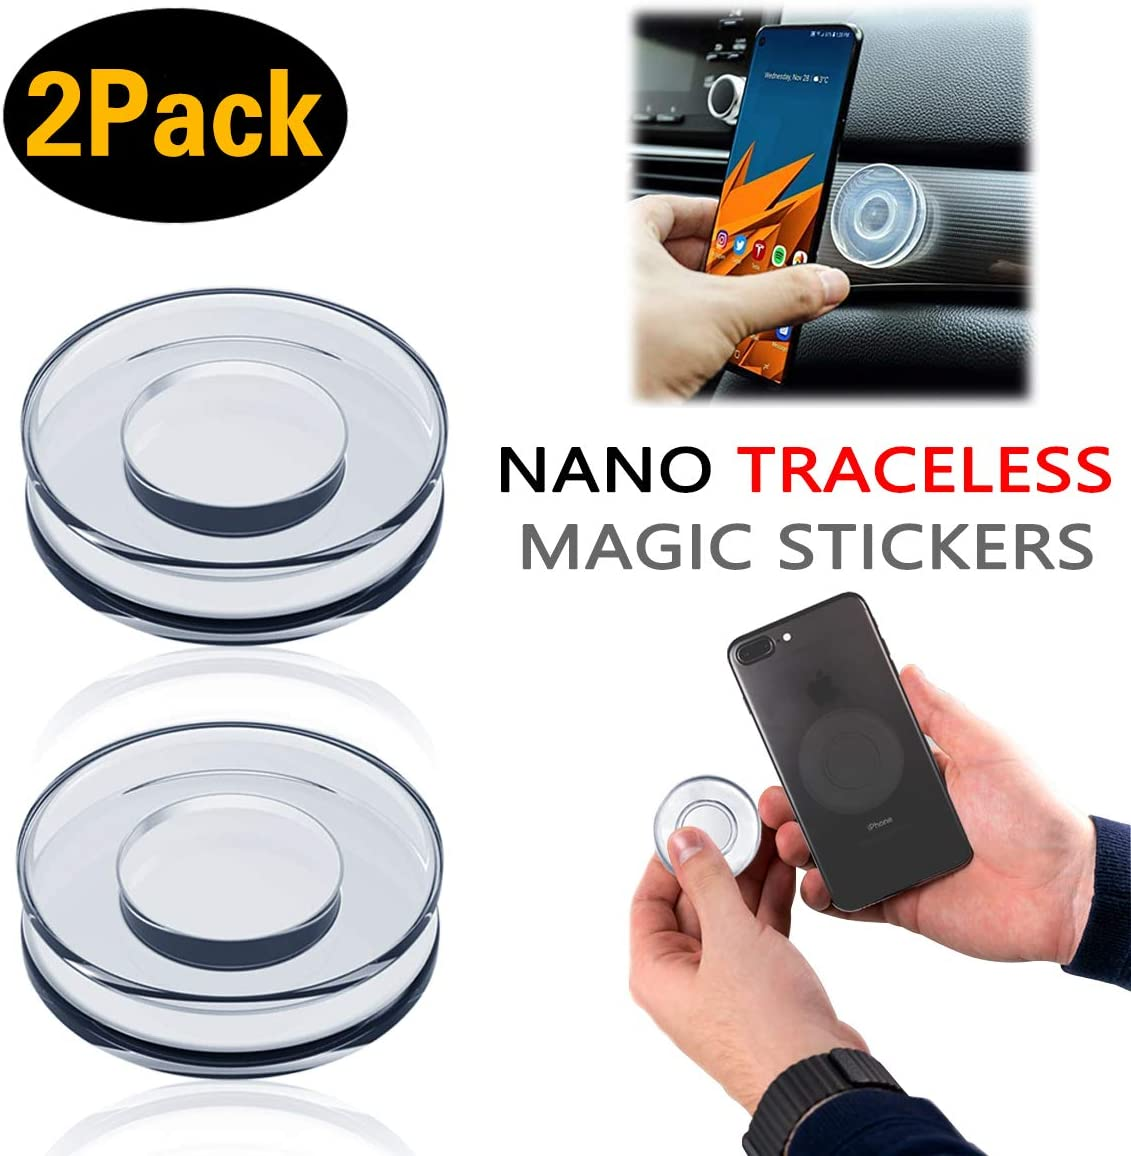 4 Pieces PJLJY Nano Casual Paste Universal Sticky Car Phone Holder Nano Gel Pad Traceless Magic Sticker,Washable Multi-Functional,PU Materia Nano Magic Paste for Car,Office,Home Storage of Small Items